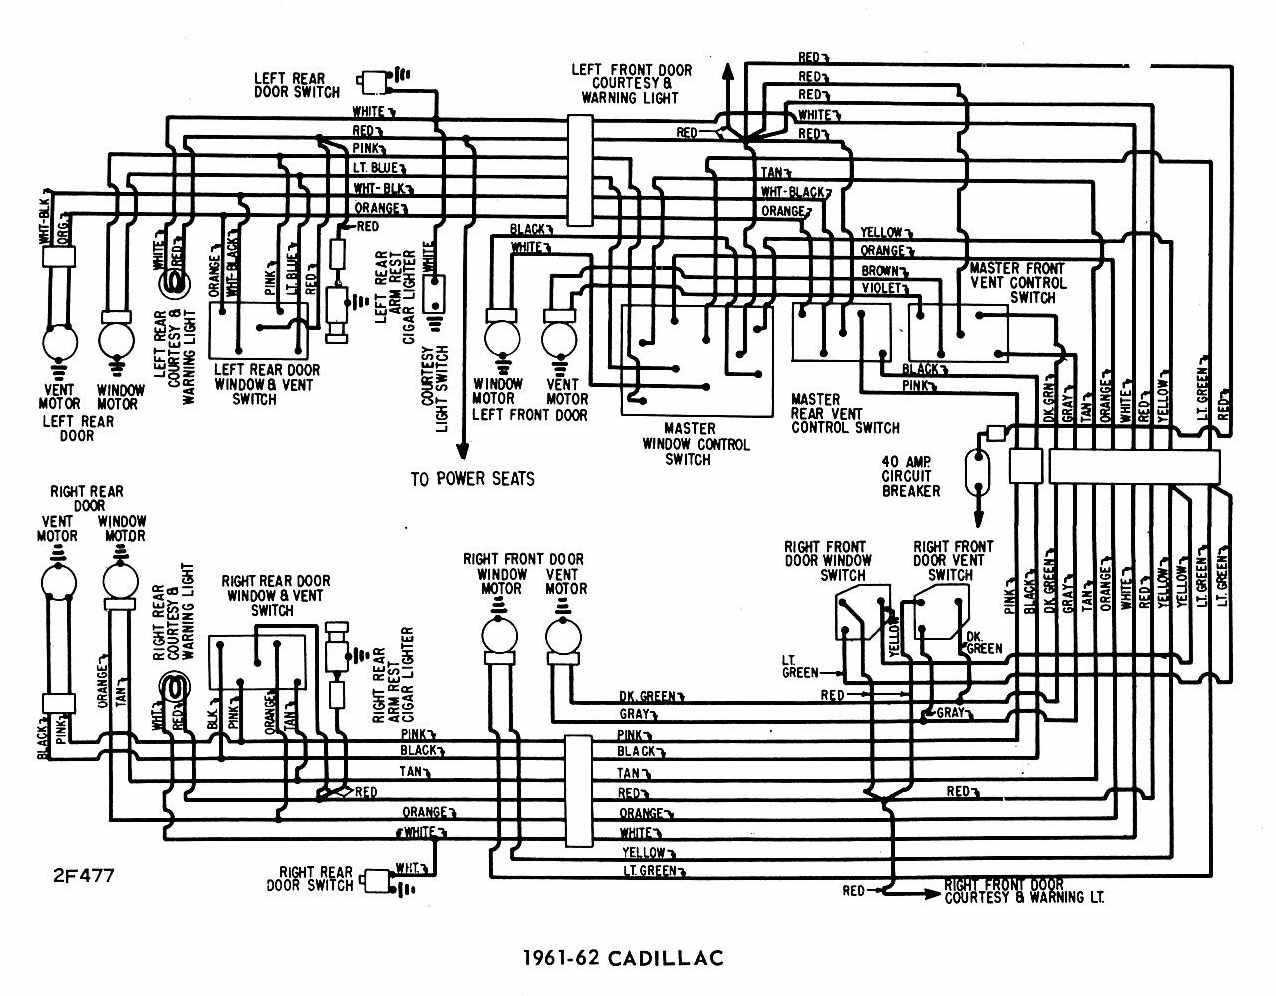 Cadillac 1961 1962 Windows Wiring Diagram All About